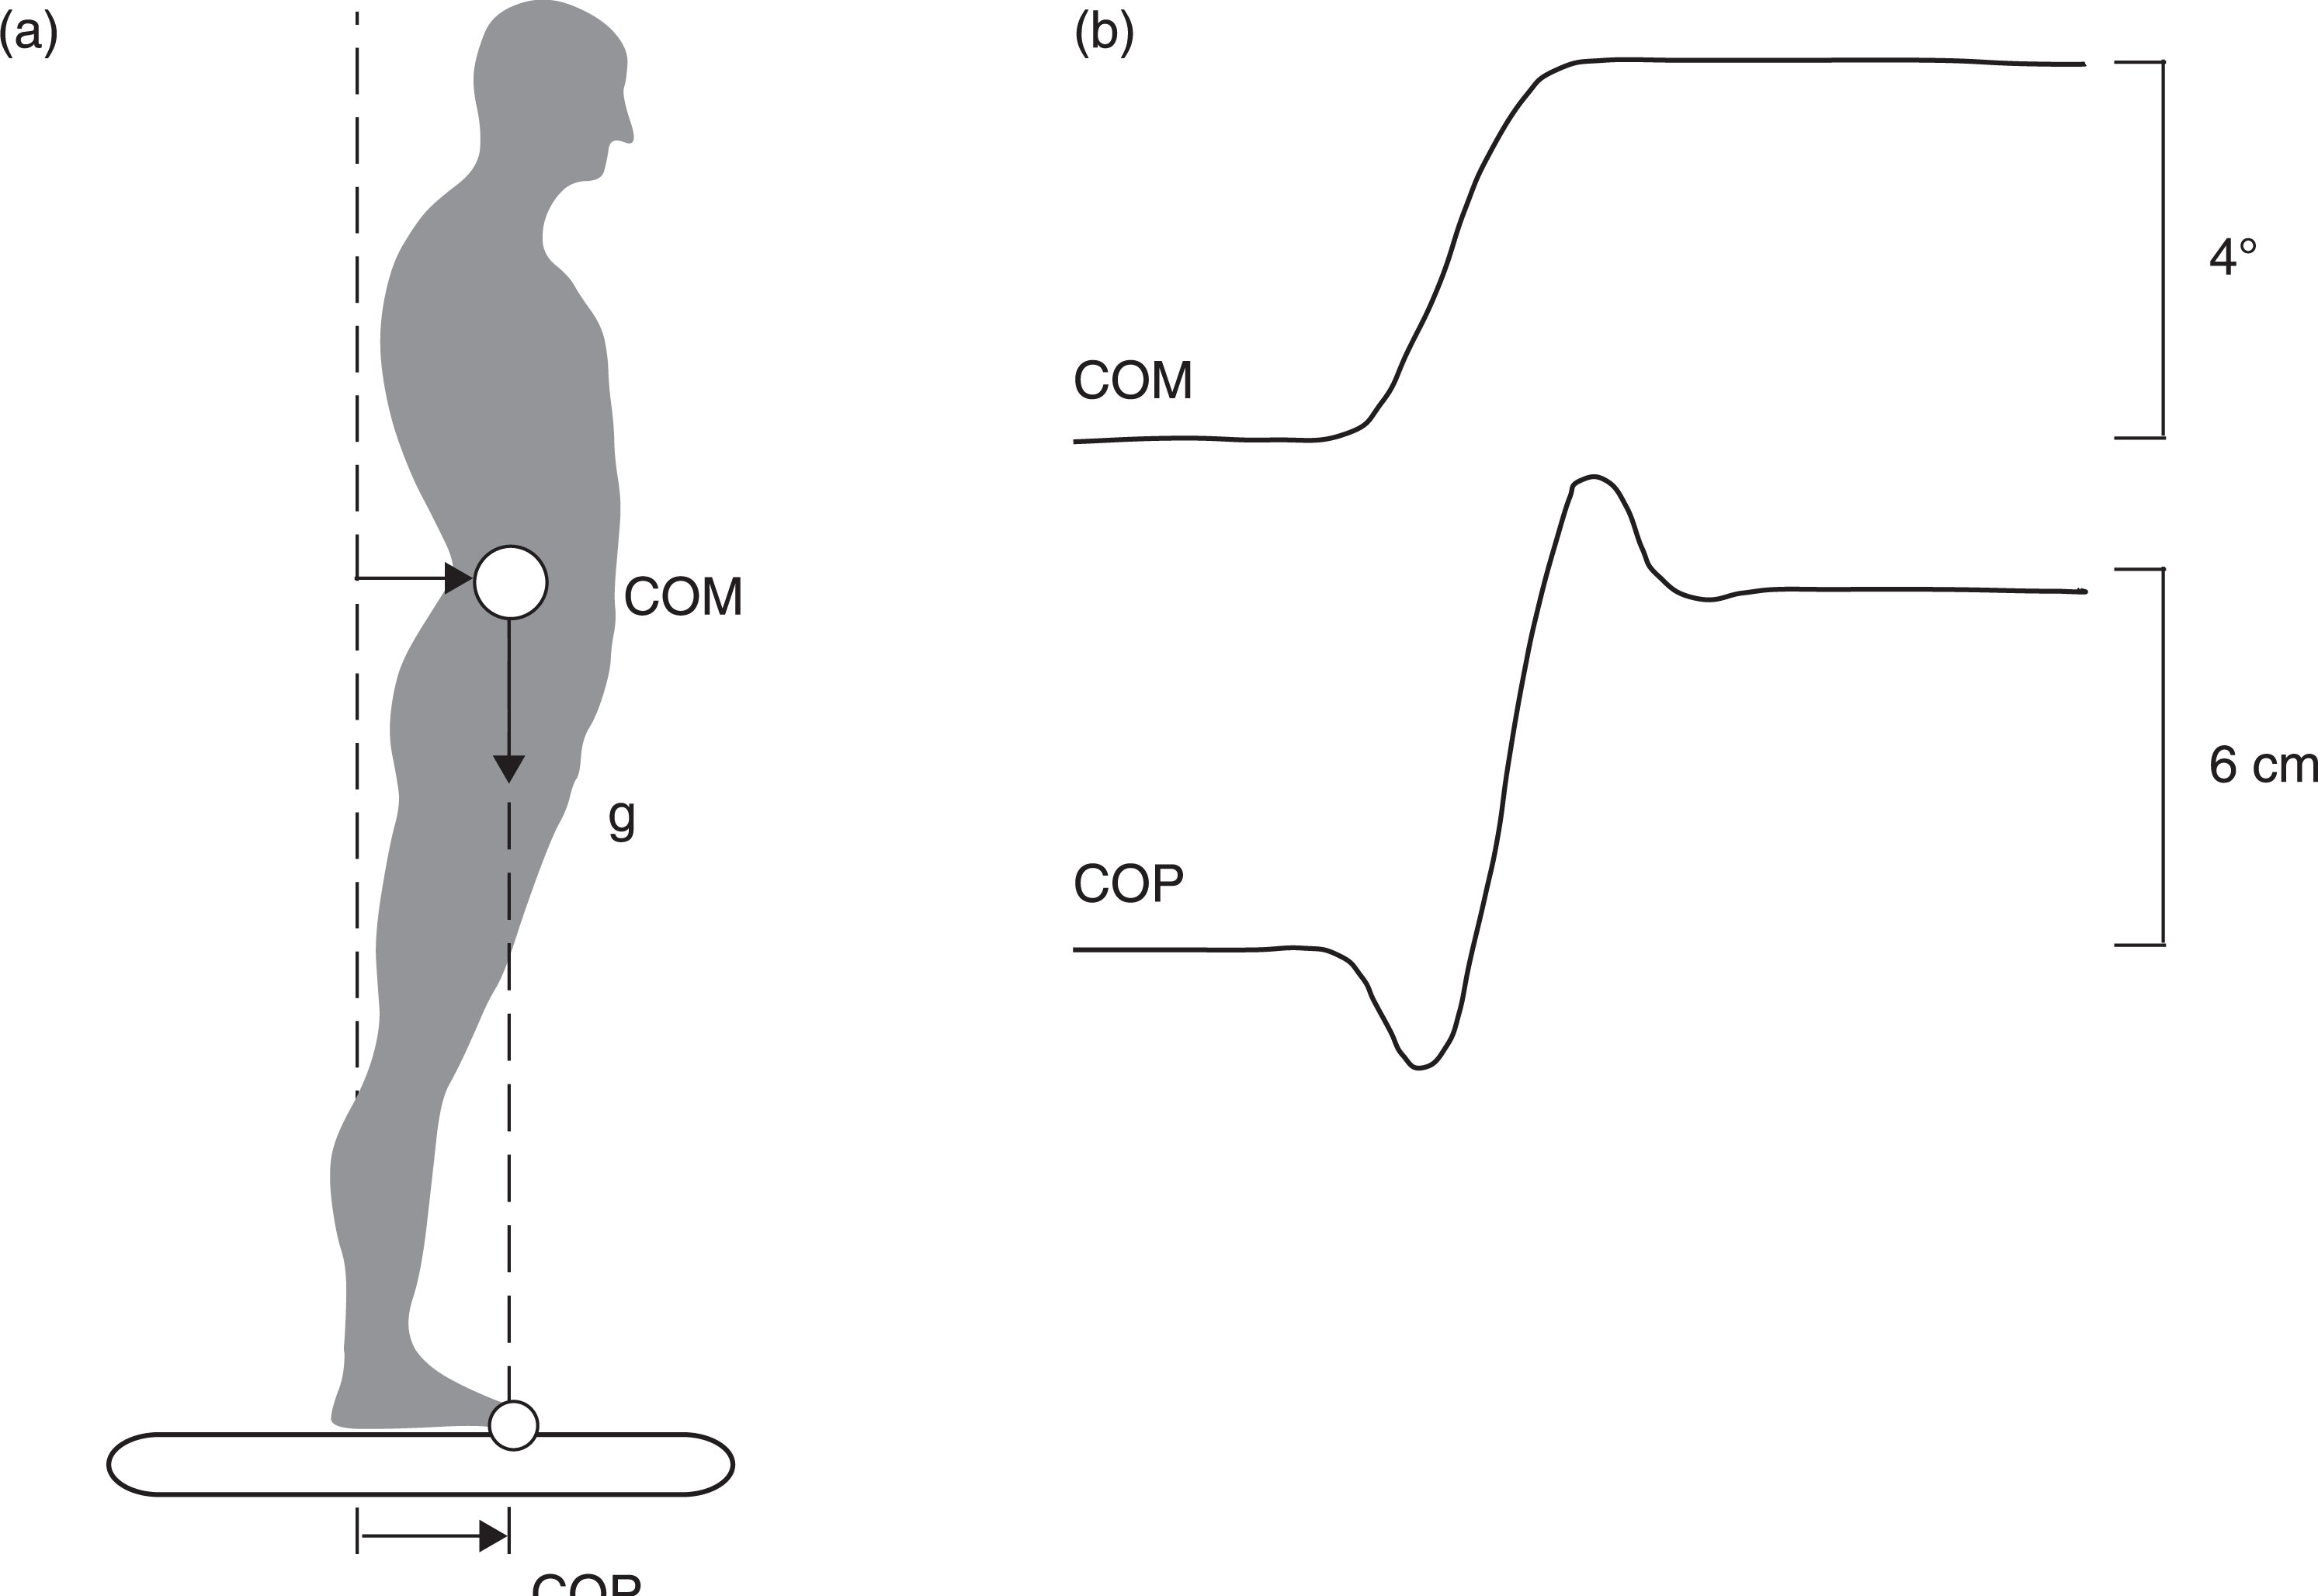 Schematic representation of center of mass, COM, and center of pressure, COP. (a) During a static body lean forward, the COM's projection to the support surface determines the COP. (b) During active lean (dynamic condition), the COP also contains the ground reaction force that is generated to accelerate and decelerate the COM.